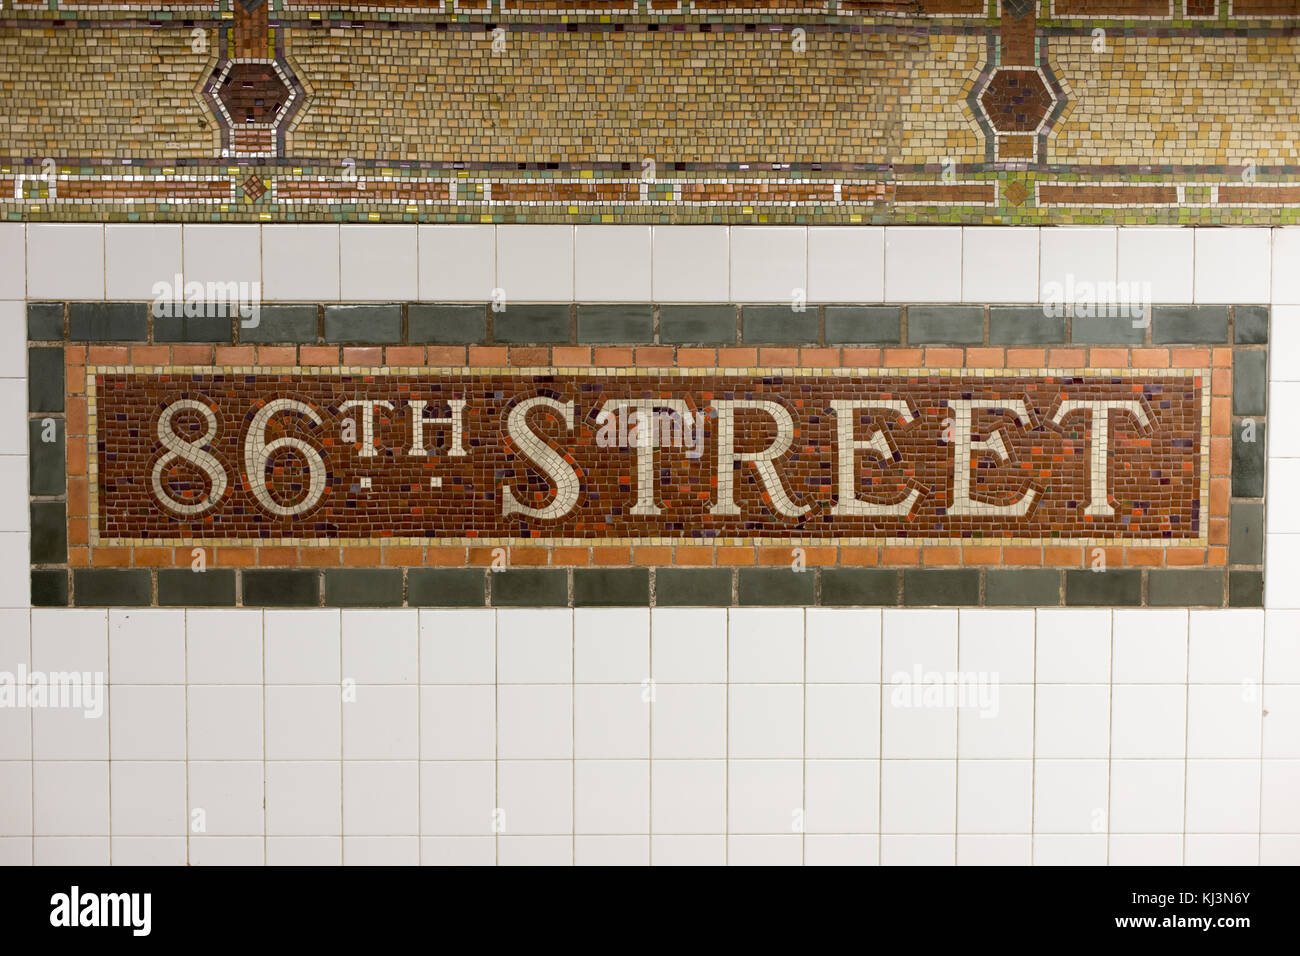 86th street subway station mosaic tile sign in new york city stock 86th street subway station mosaic tile sign in new york city dailygadgetfo Choice Image